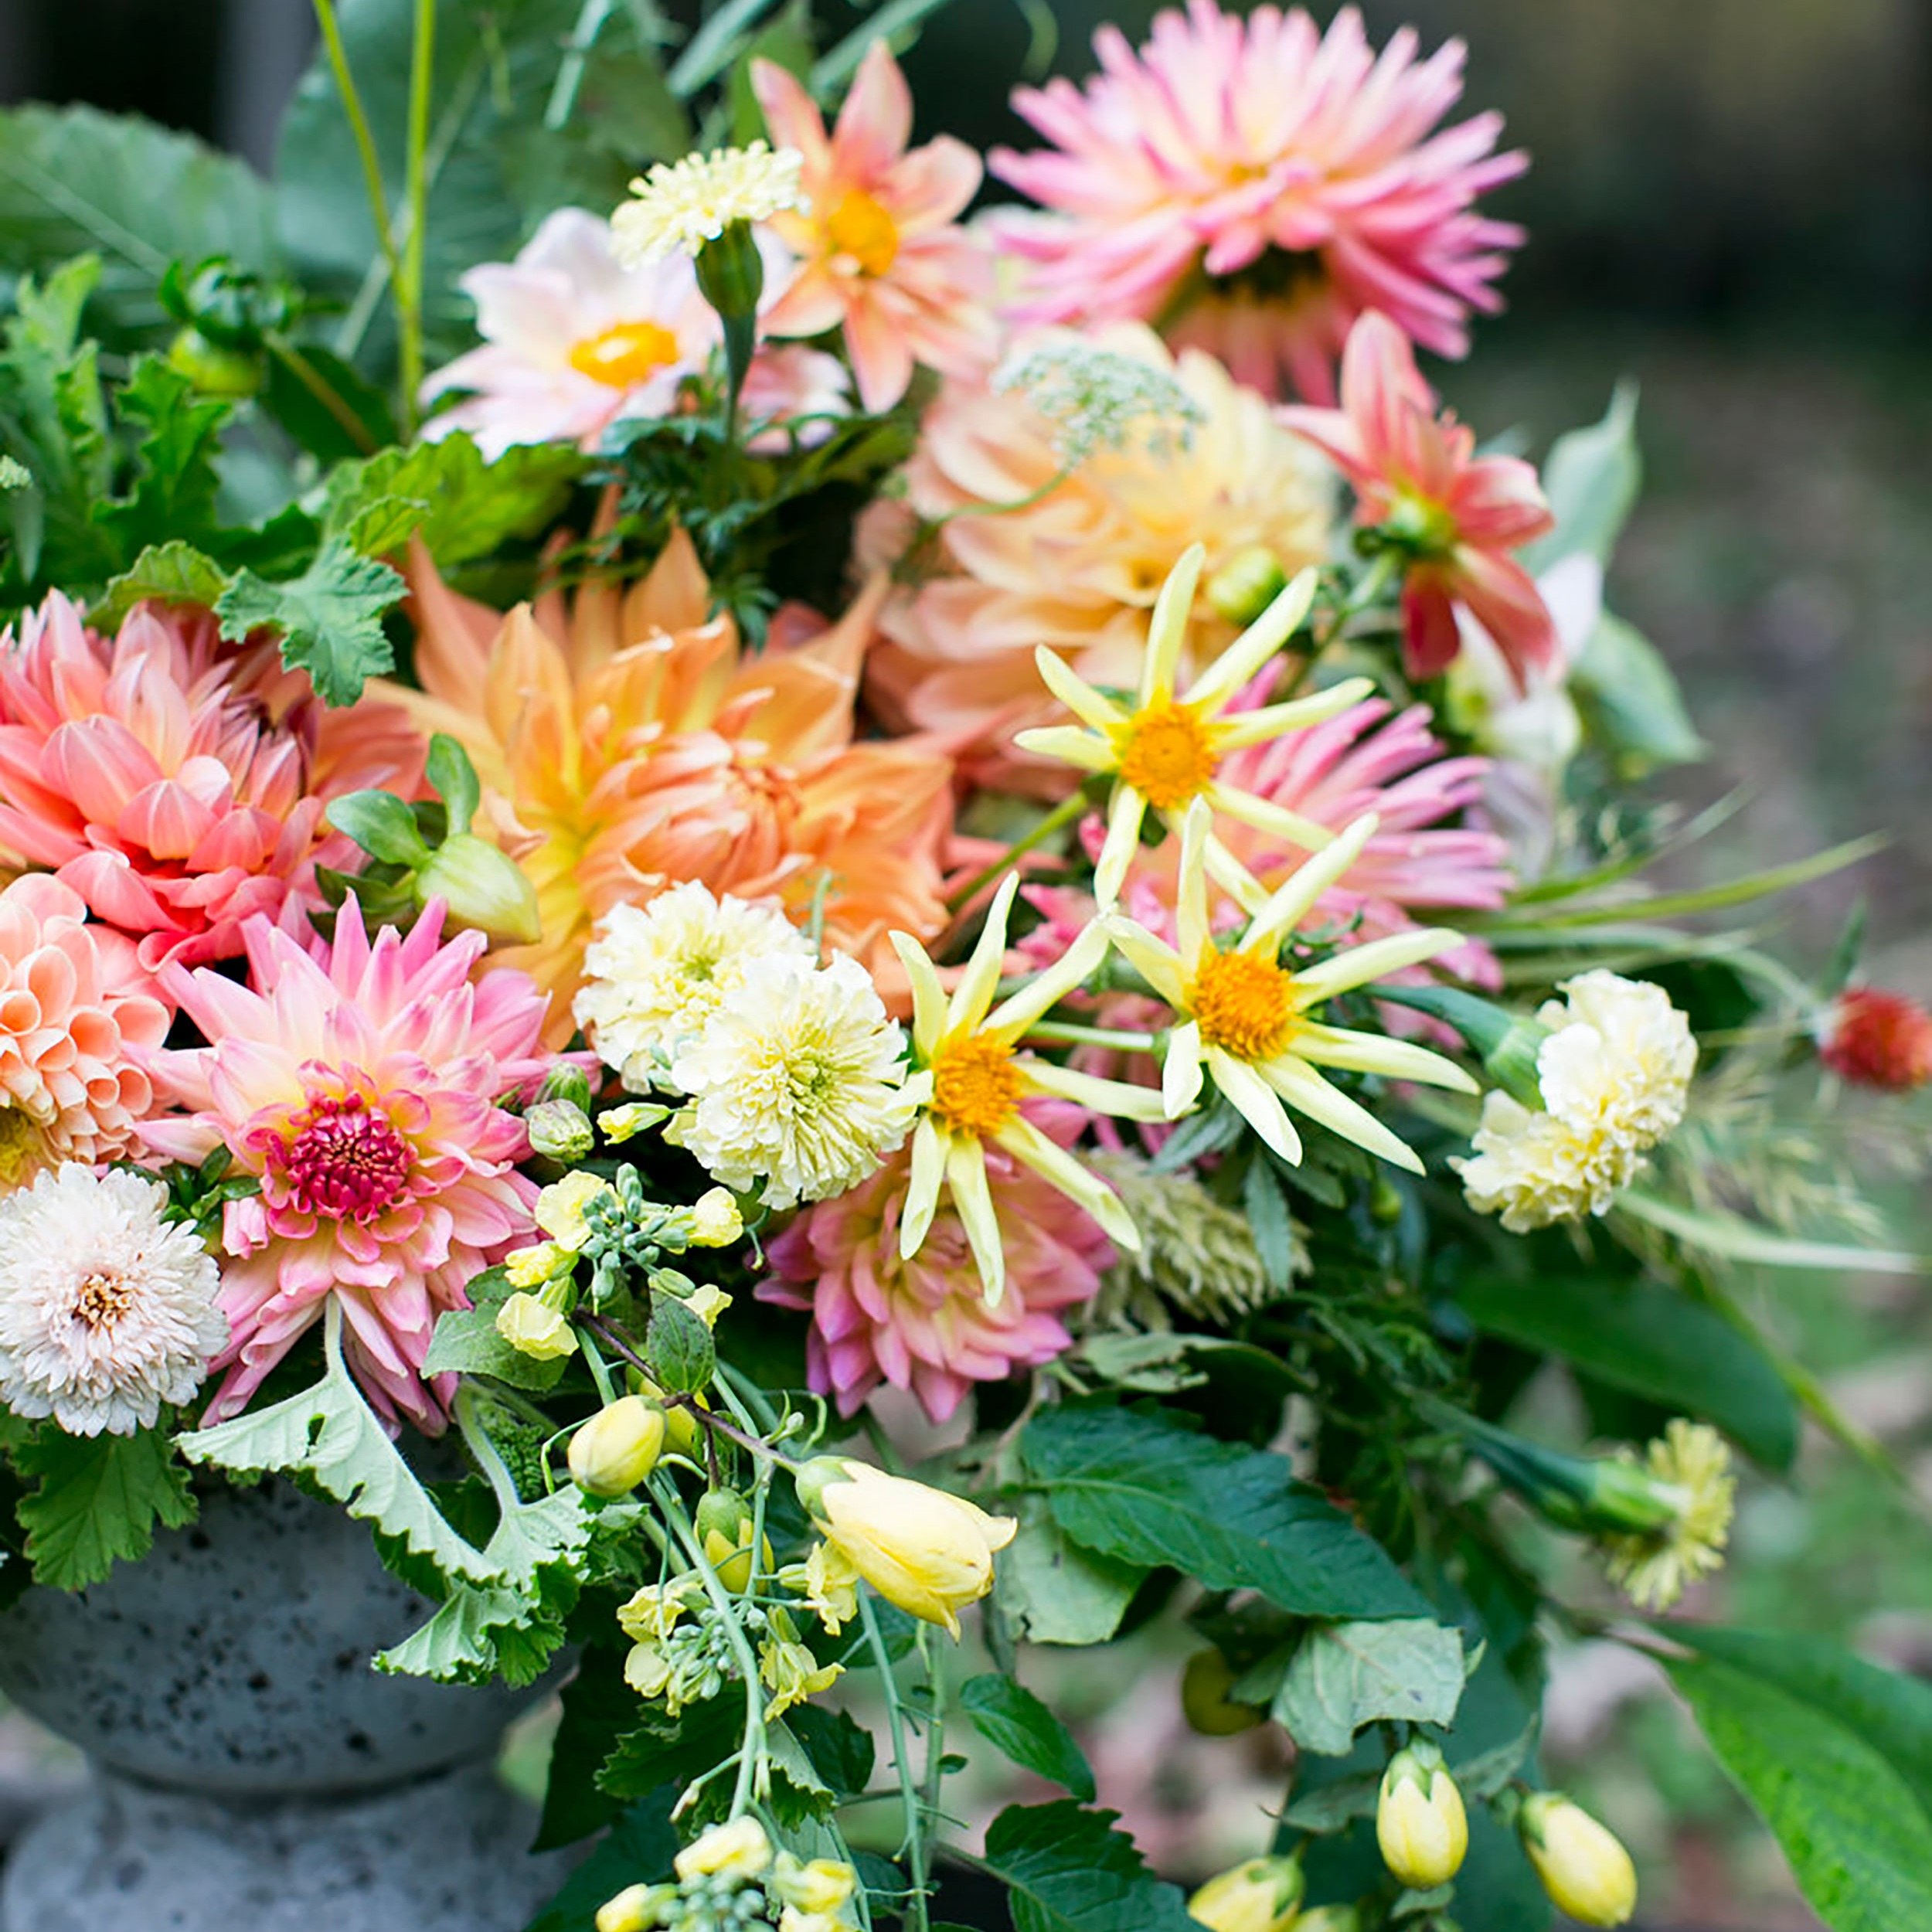 Dahlias Forever - Workshop Fee: $90TWO DATES: * SOLD OUT Sunday, September 15, 3pm- 5pmThursday, September 19, 6pm-8pm (date added!)Dahlia season is a special time of year at Two Pony Gardens and we don't want you to miss it! Begin this workshop with a tour from Two Pony Gardens dahlia expert extraordinaire, Lisa Ringer as she tours you through the heirloom dahlia gardens. Learn about the different dahlia varieties, select your favorites and get to the design studio for a dahlia crazy workshop led by Ladyfern designer Summer Badawi. You will learn to create stunning low centerpiece arrangements that are simply spilling in dahlias and other seasonal flowers & foliages from our farm.